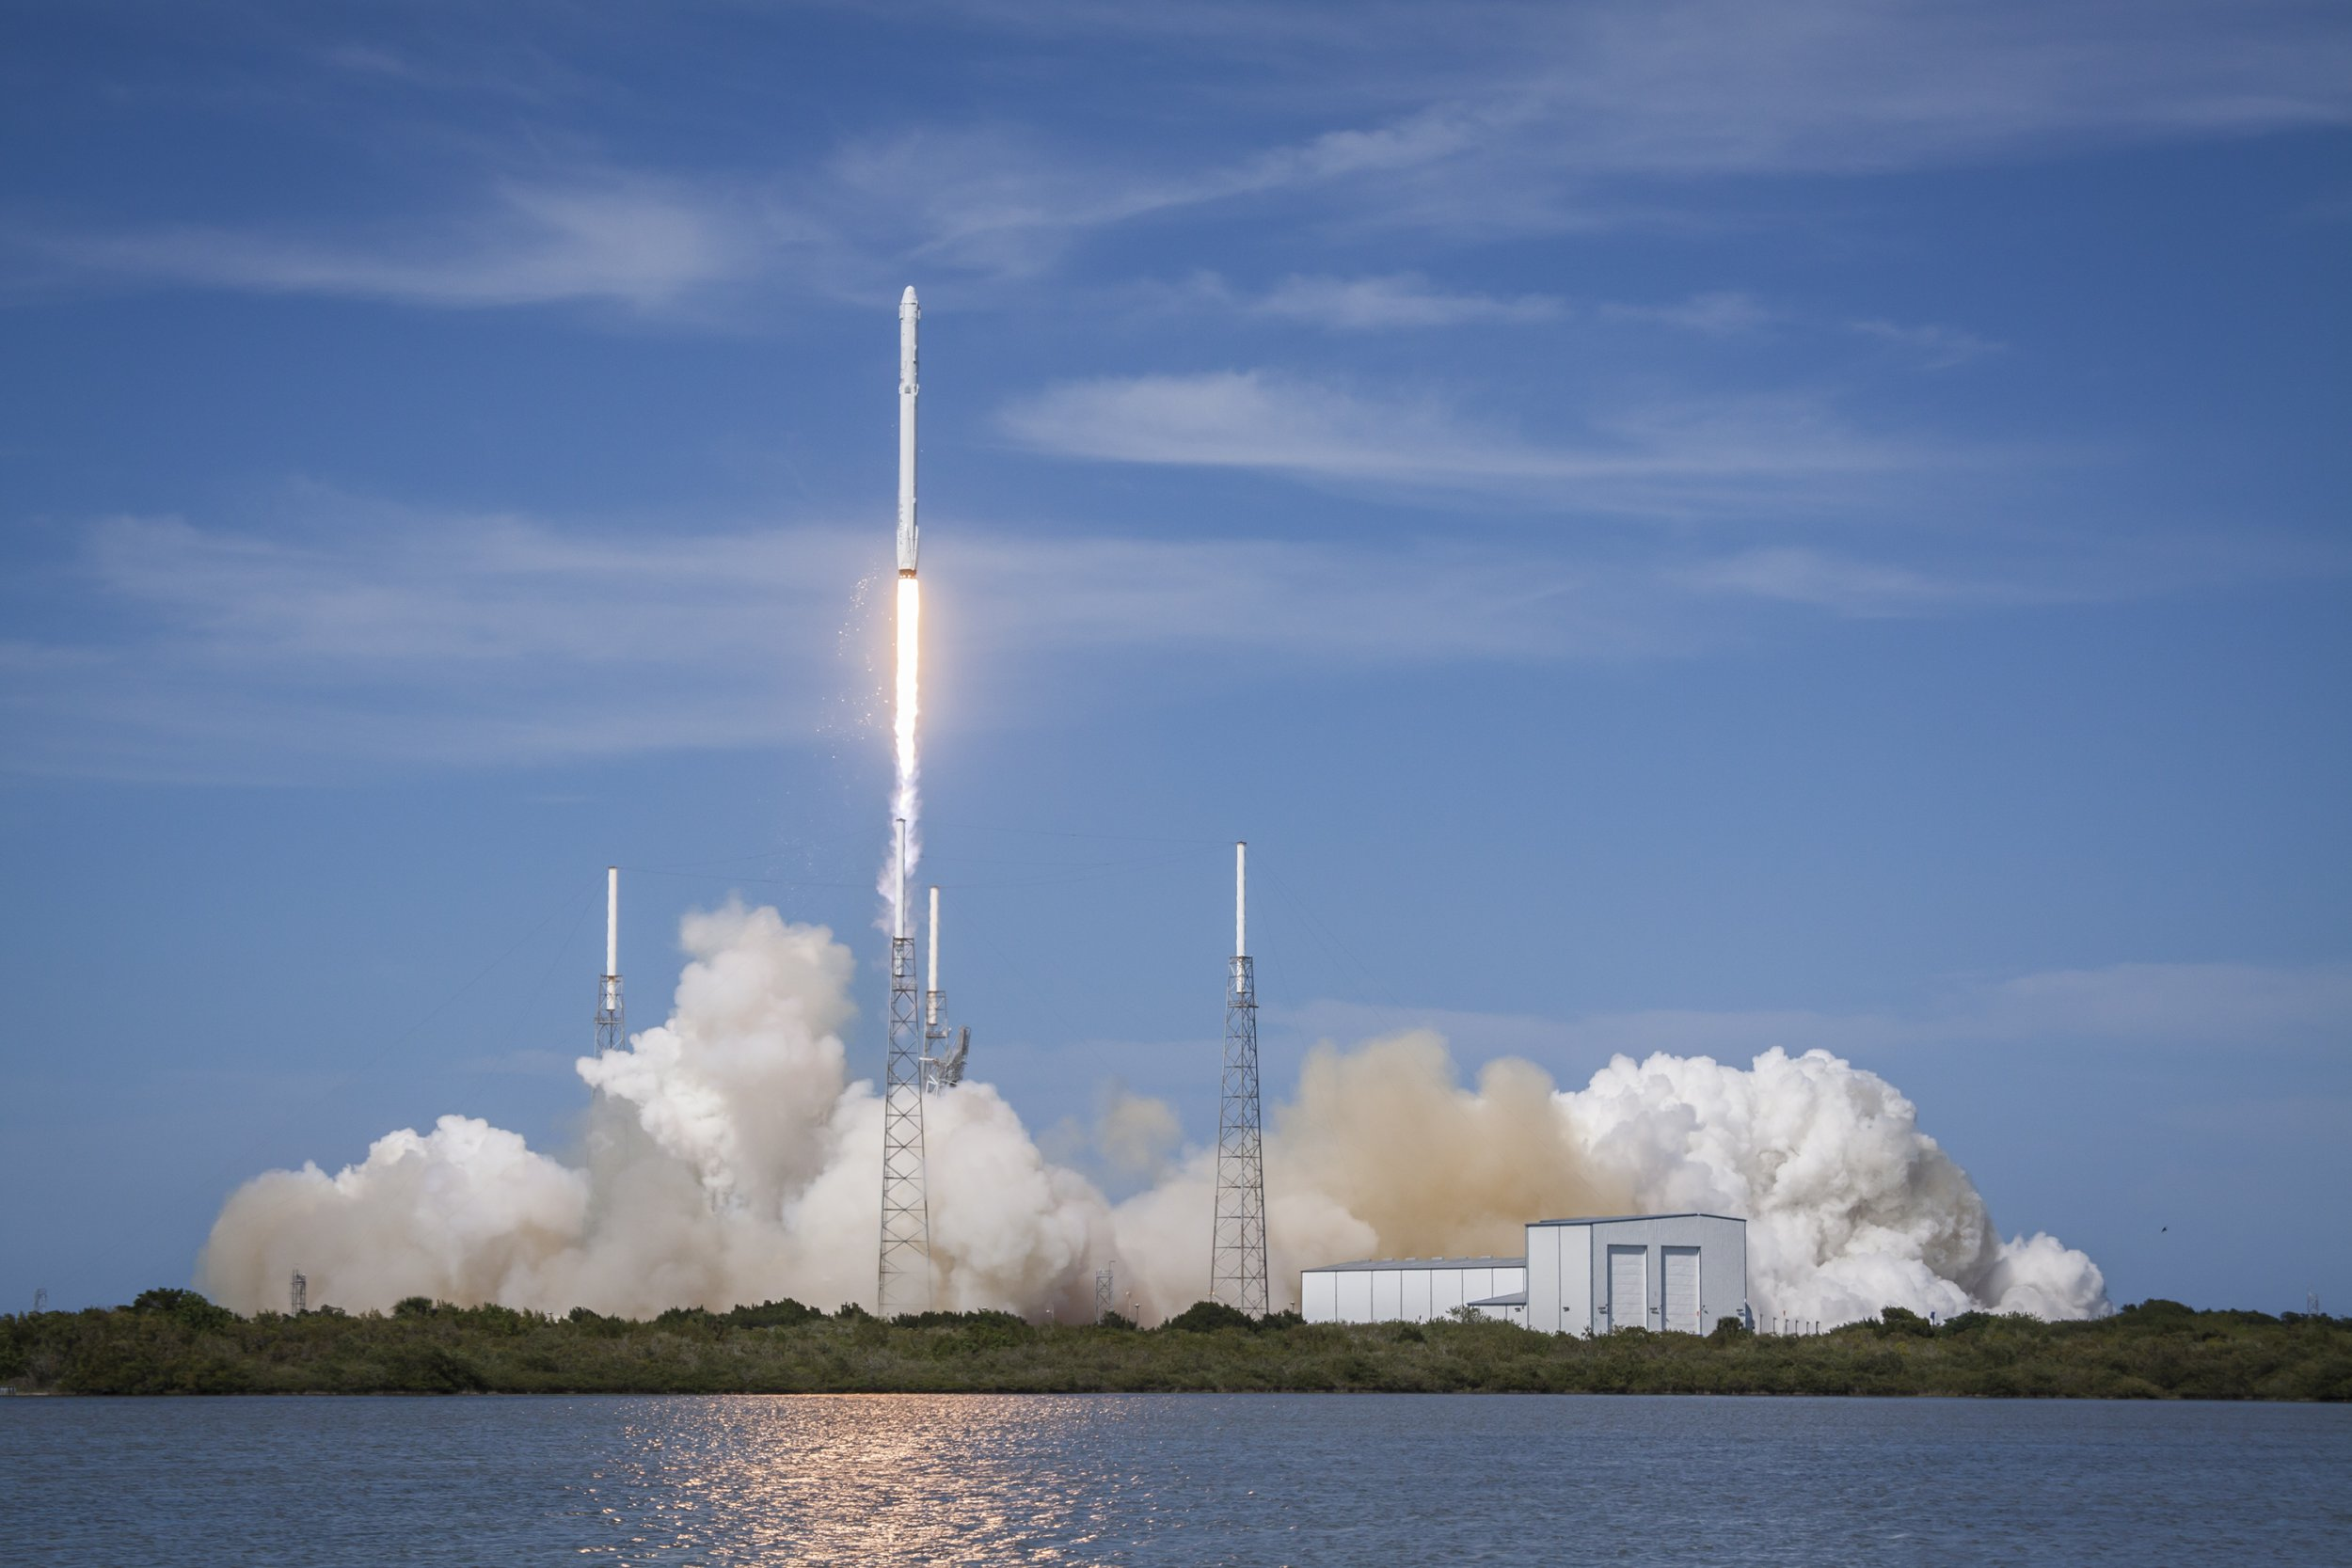 Timeline: A Brief History of SpaceX's Reusable Rocket Launches